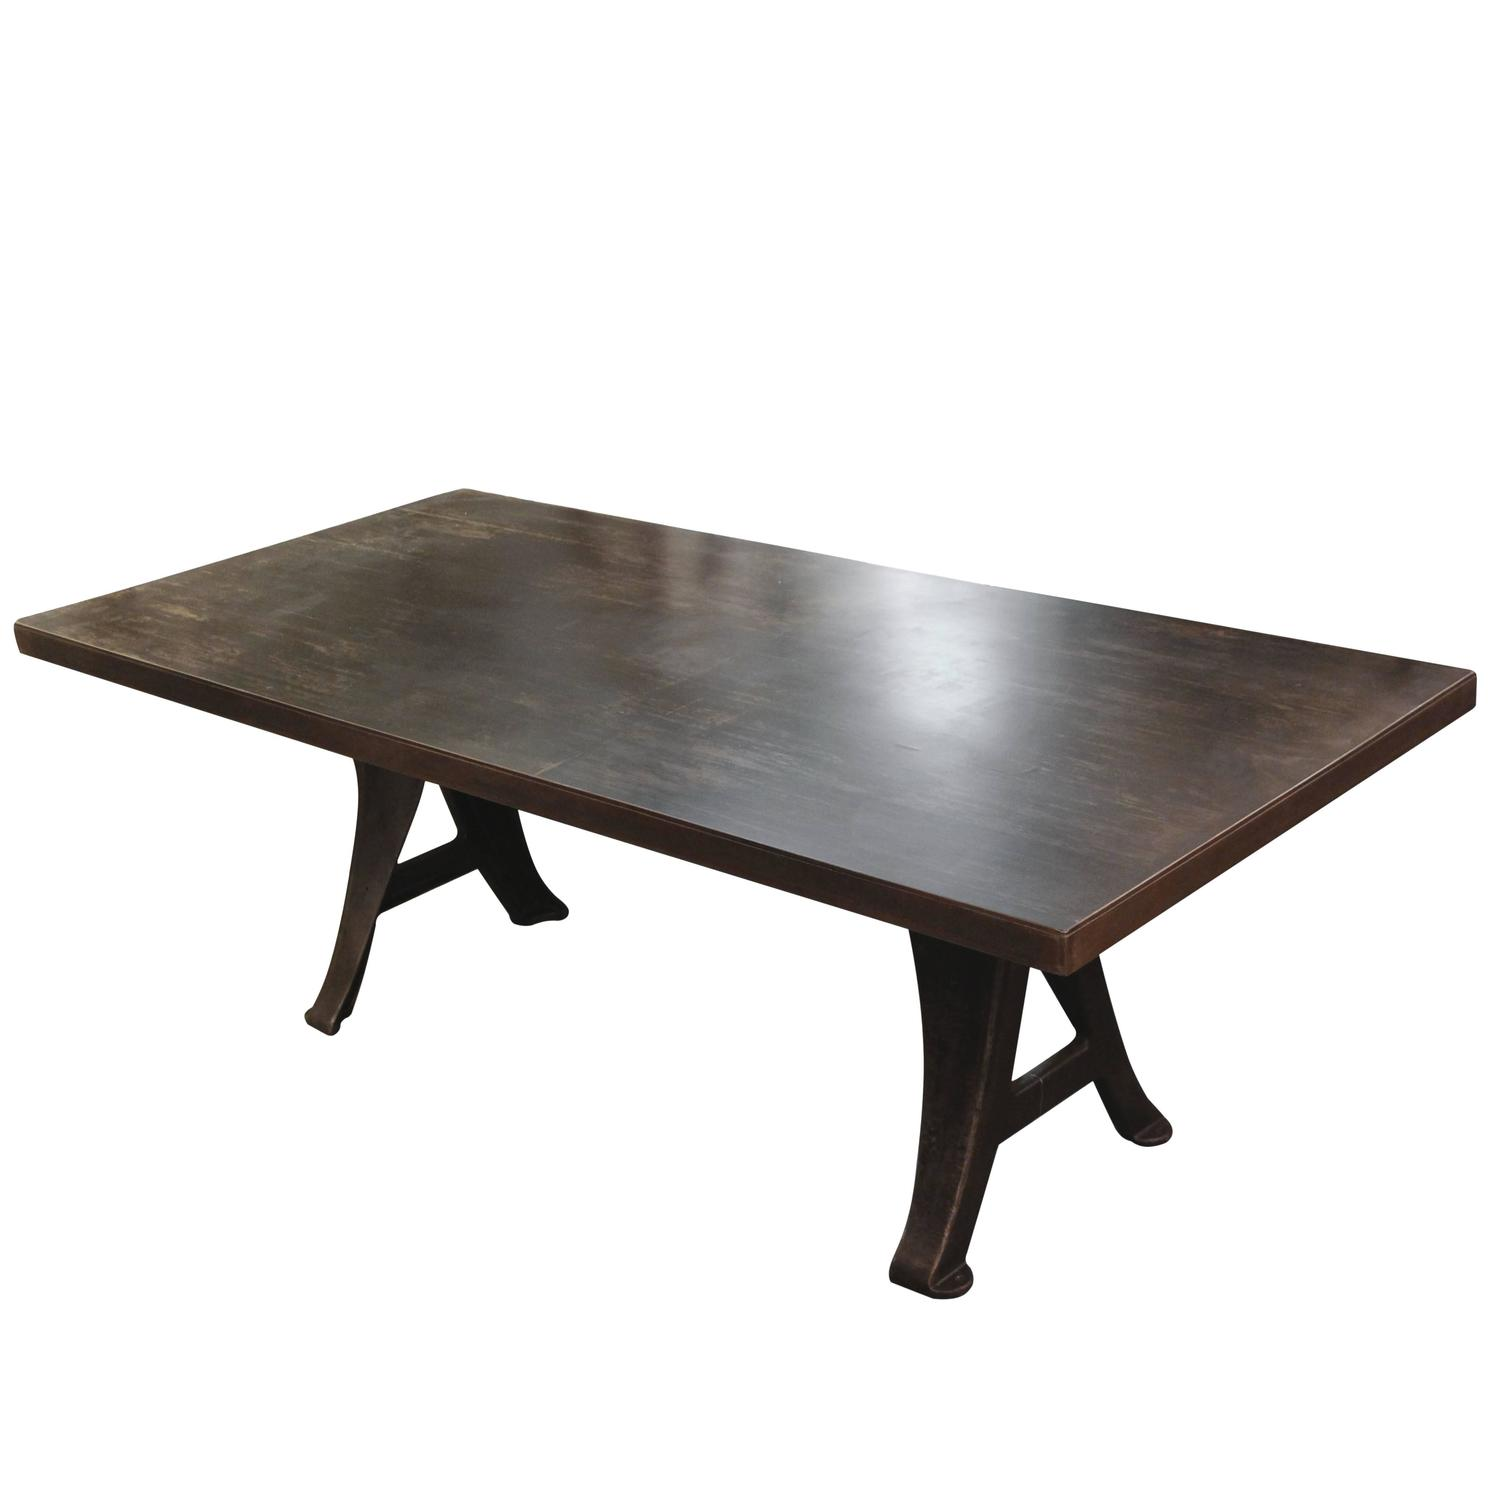 Steel table with original cast iron machine legs for sale for Cast iron table legs for sale